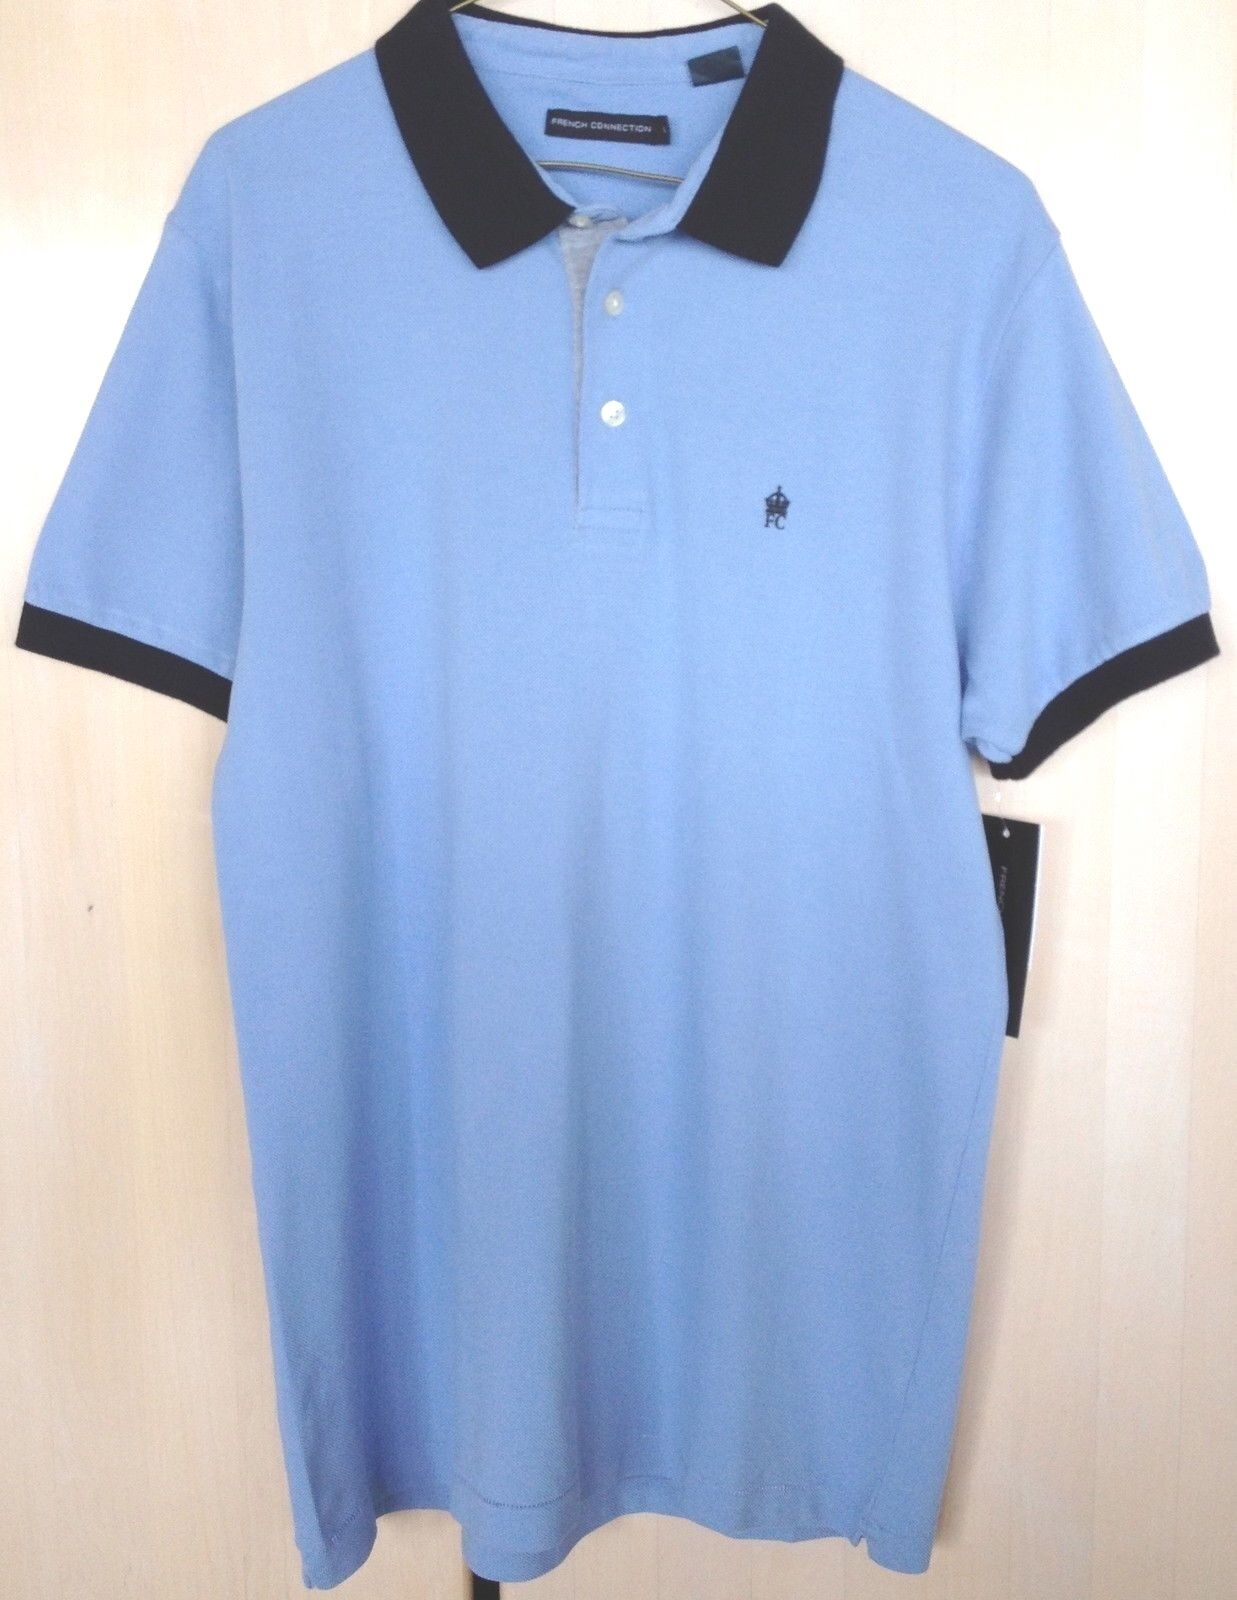 French Connection Polo Shirt Light bluee SS Mesh Cotton Knit Collar 3 button NWTS